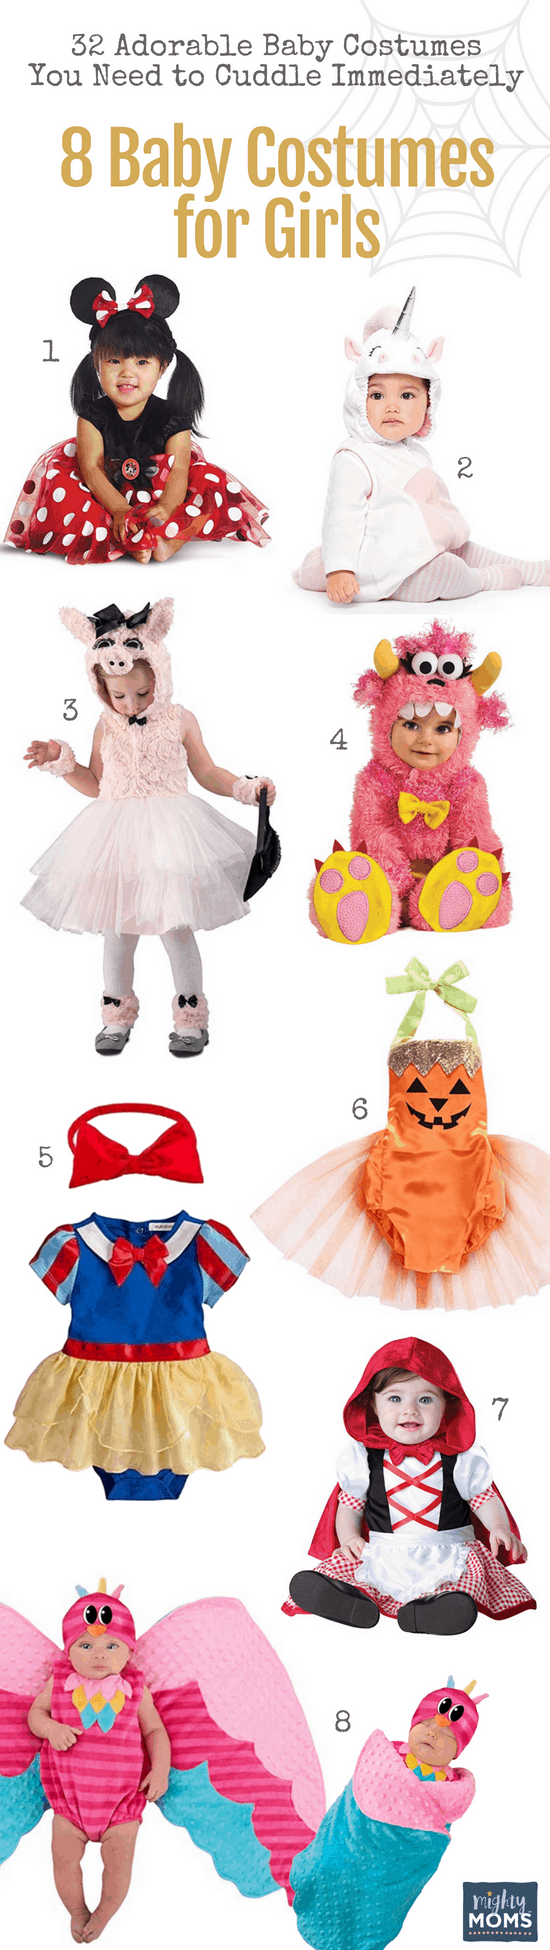 Baby costumes for girls - MightyMoms.club